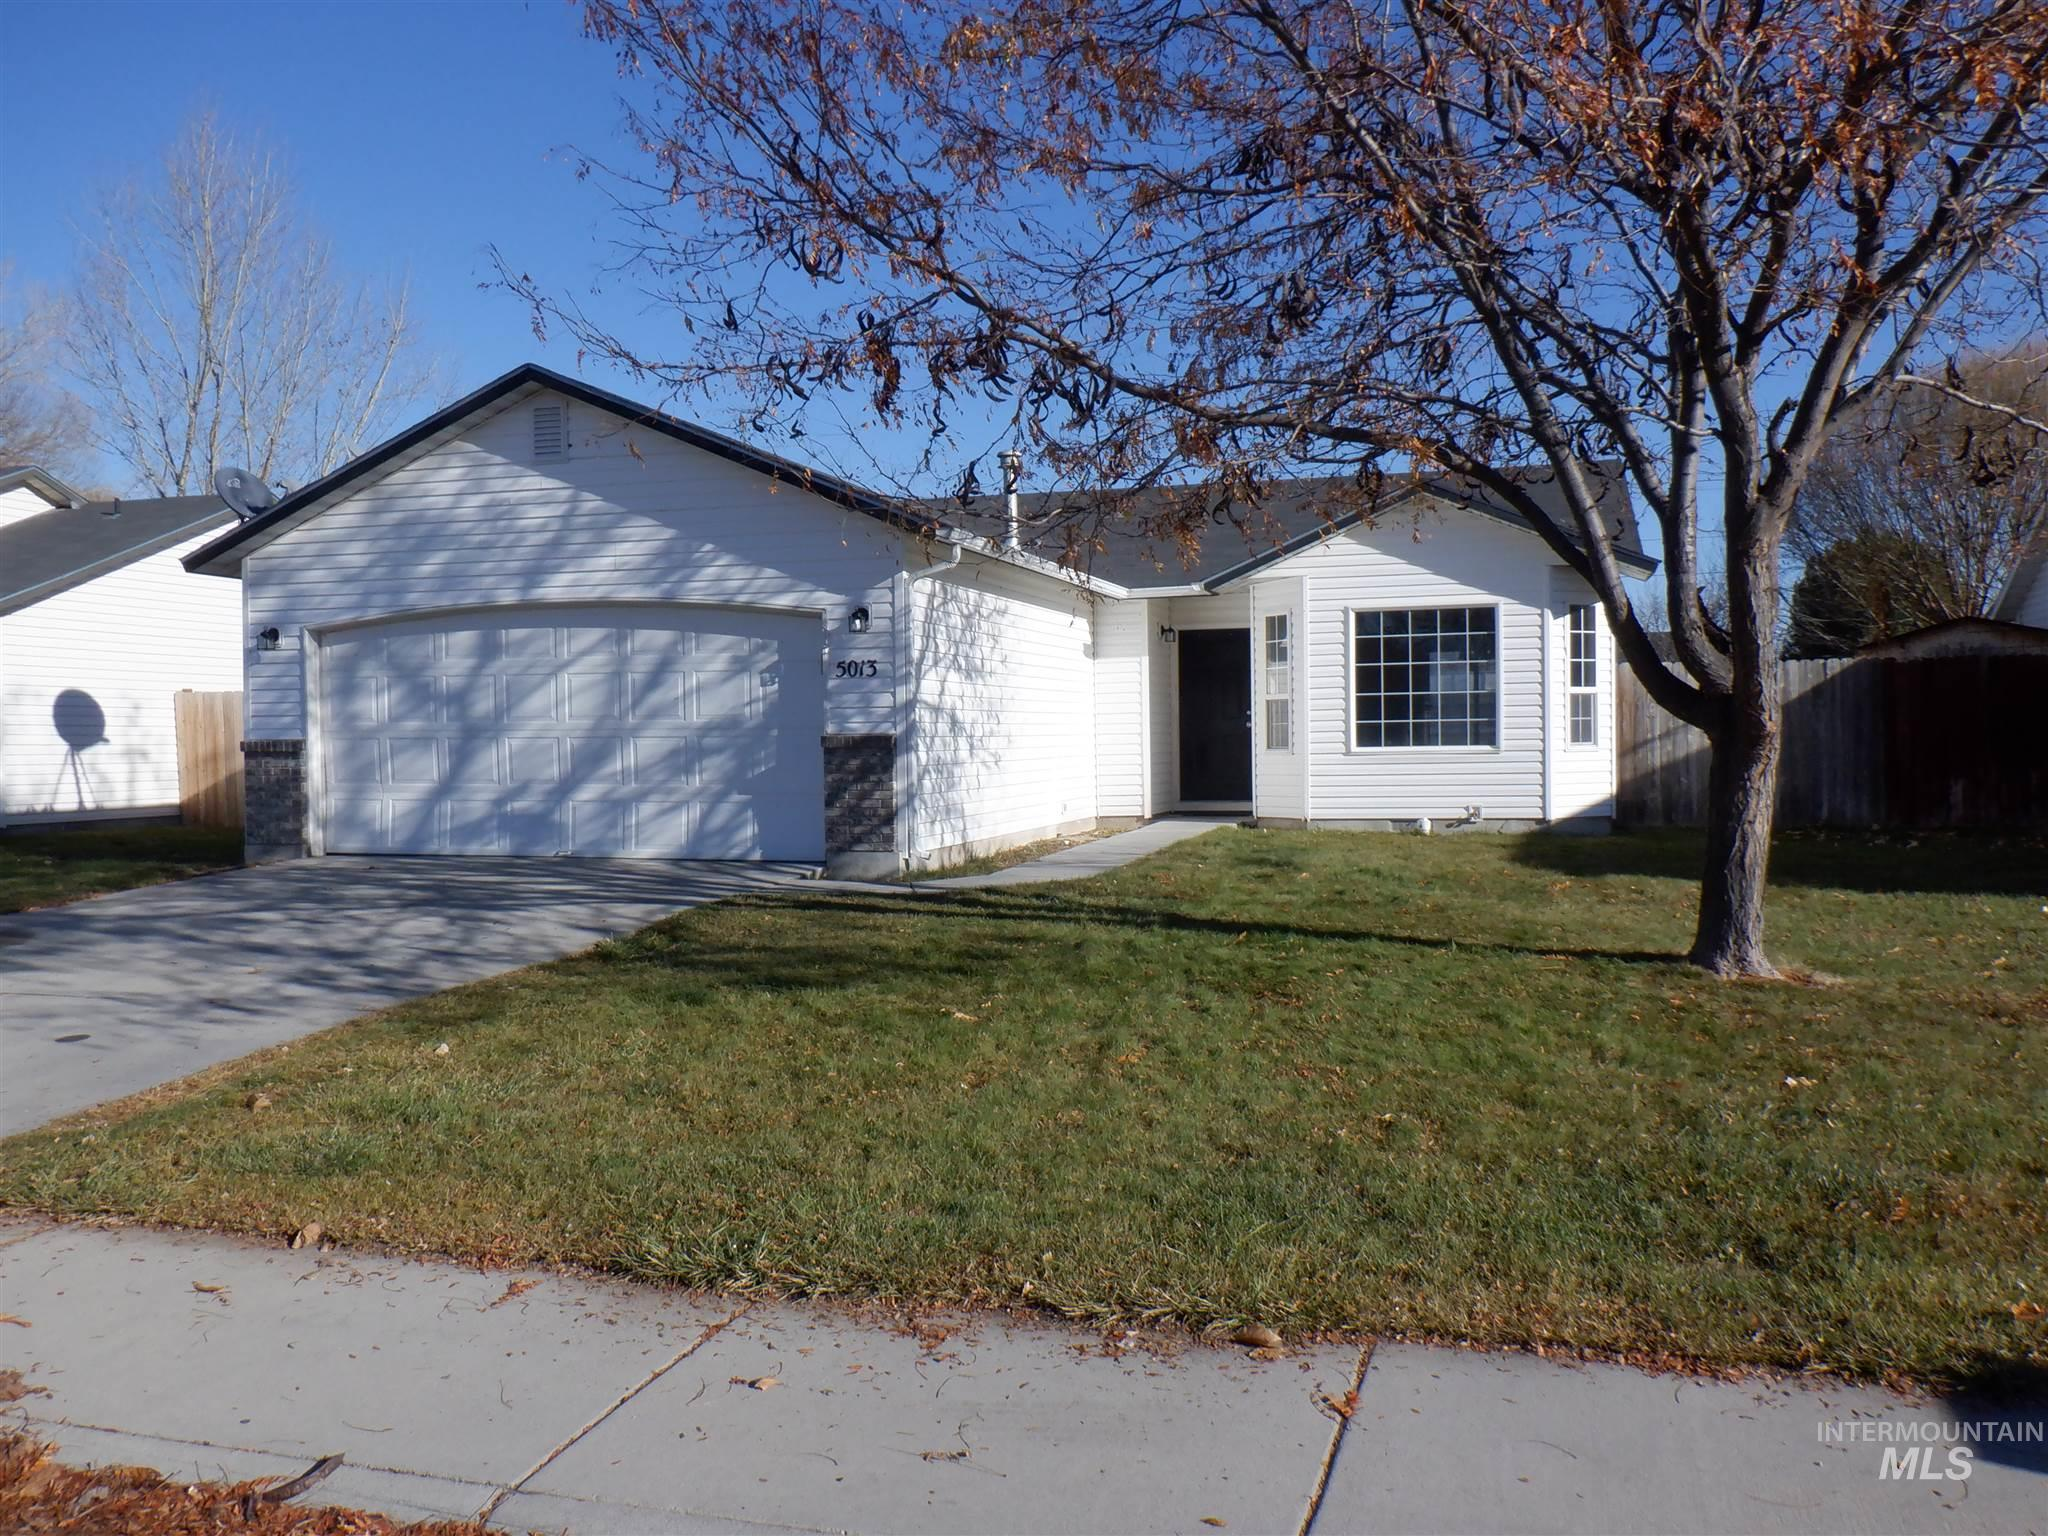 5013 Auburn Ave, Caldwell, Idaho 83607, 3 Bedrooms, 2 Bathrooms, Residential For Sale, Price $255,000, 98788029